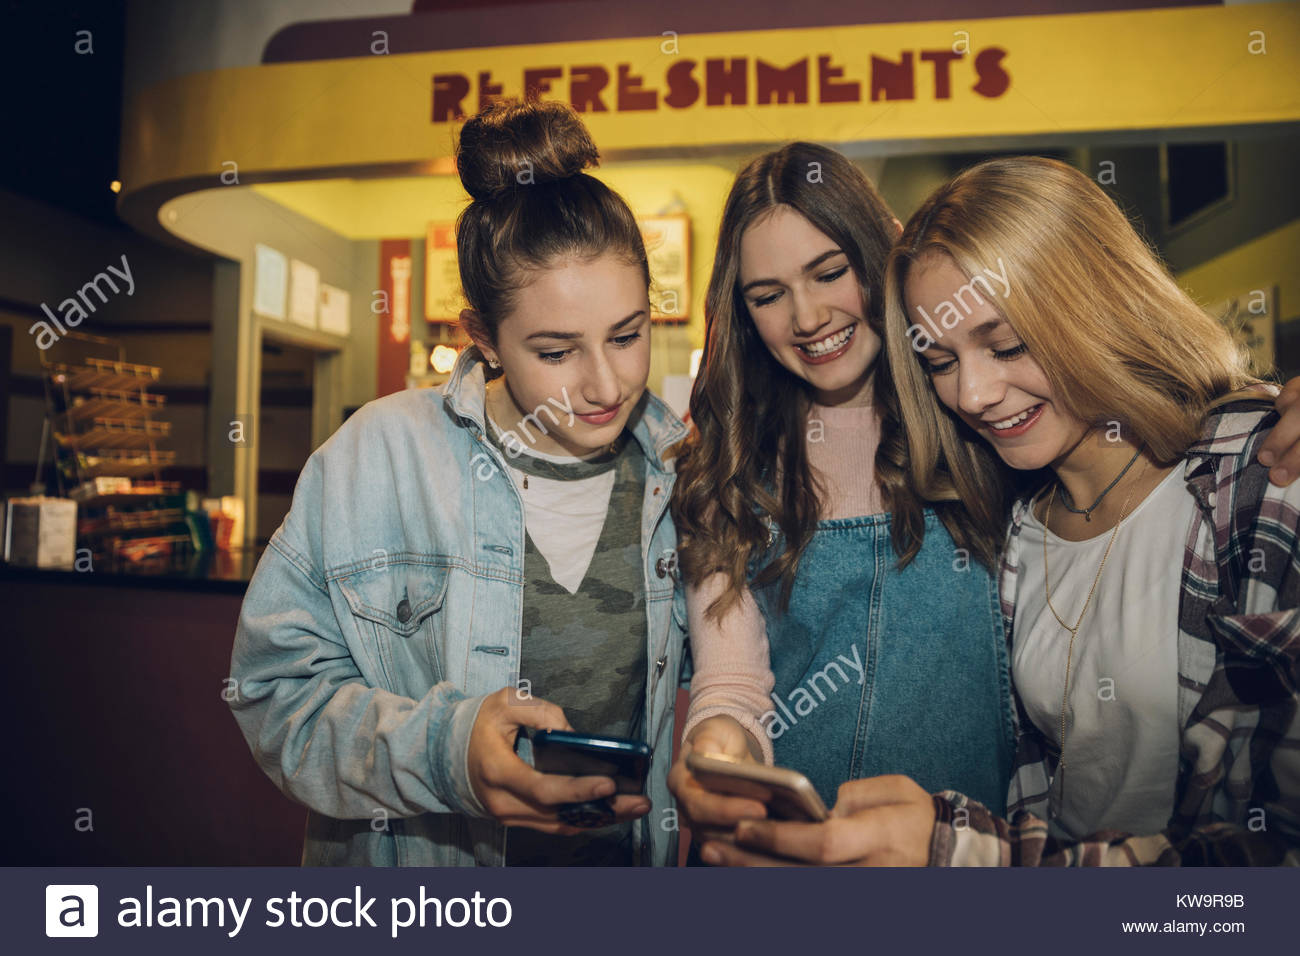 Tween Smiling Caucasian girl friends texting with smart phones at Movie Theater Photo Stock